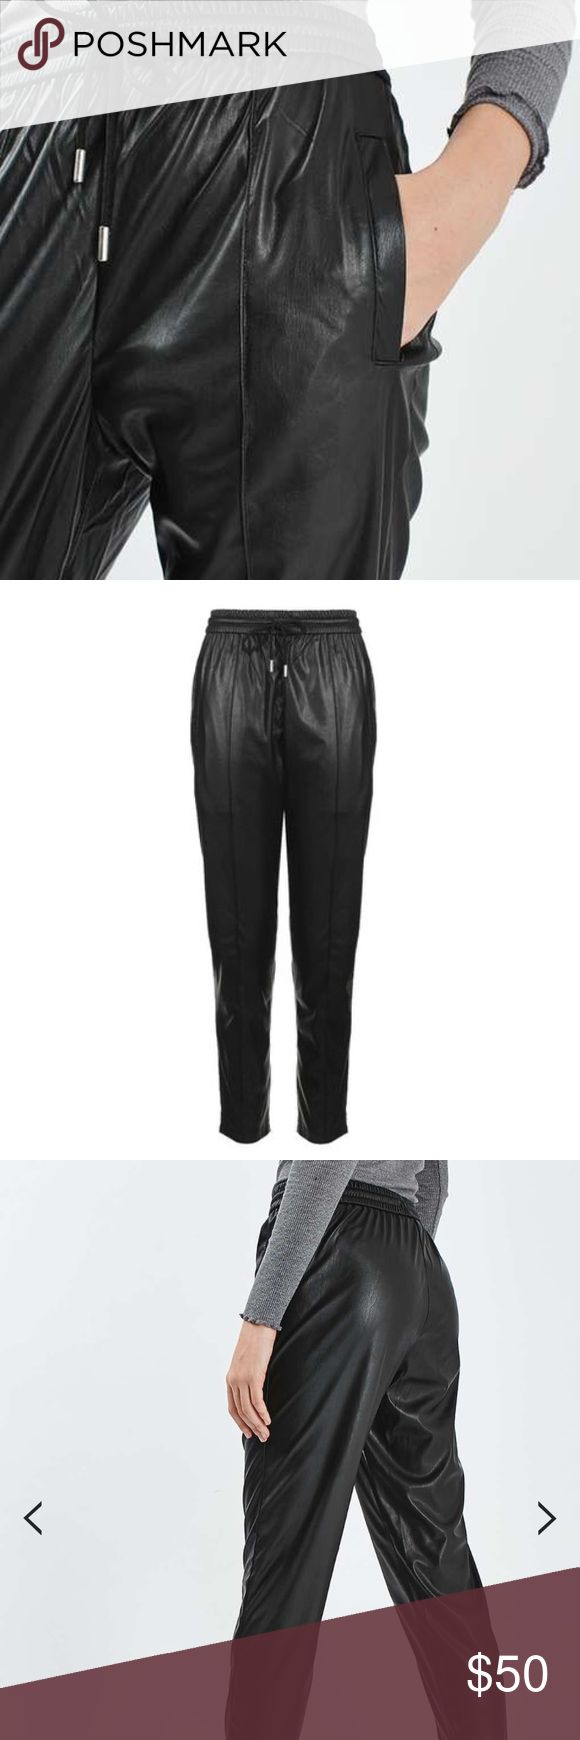 Topshop faux leather jogger pants New with tag. Size 6 Topshop Pants Track Pants & Joggers